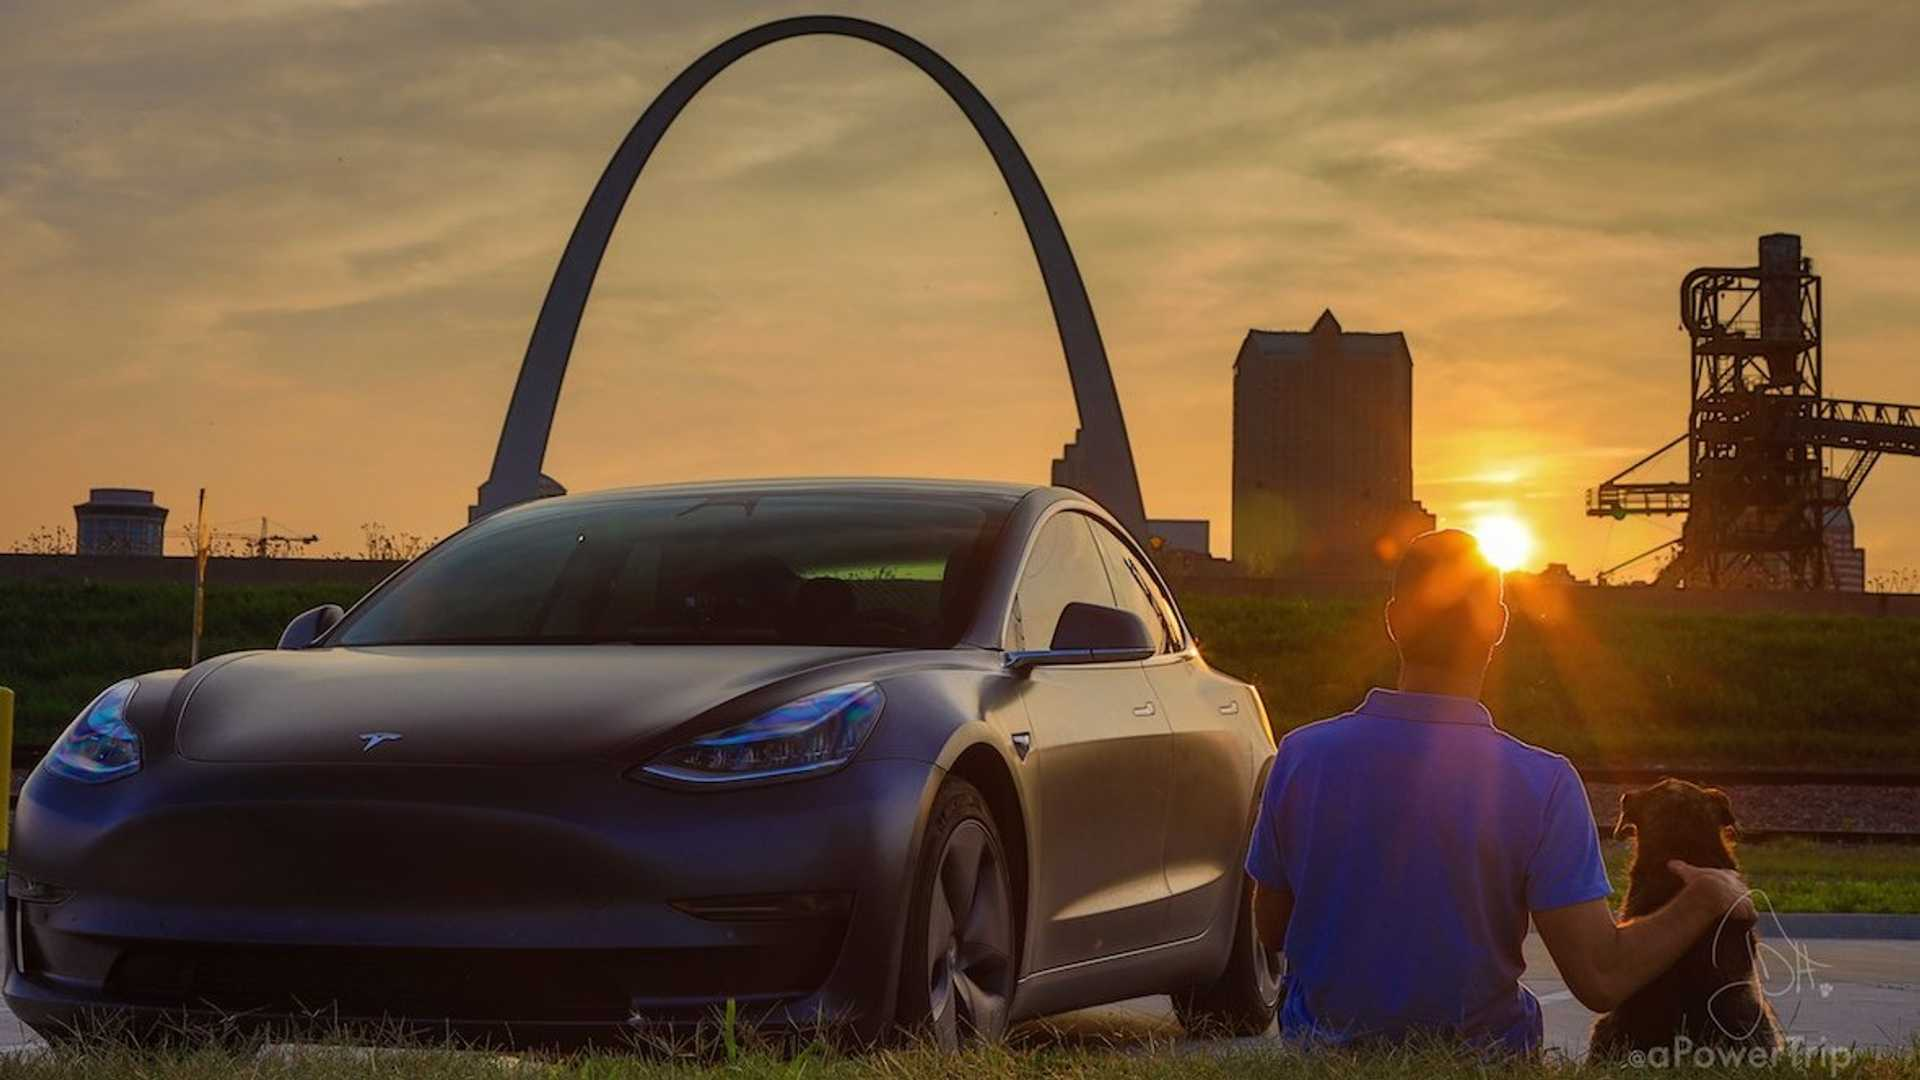 A Tesla Model 3, Man's Best Friend, And A Full Summer Of Exploring